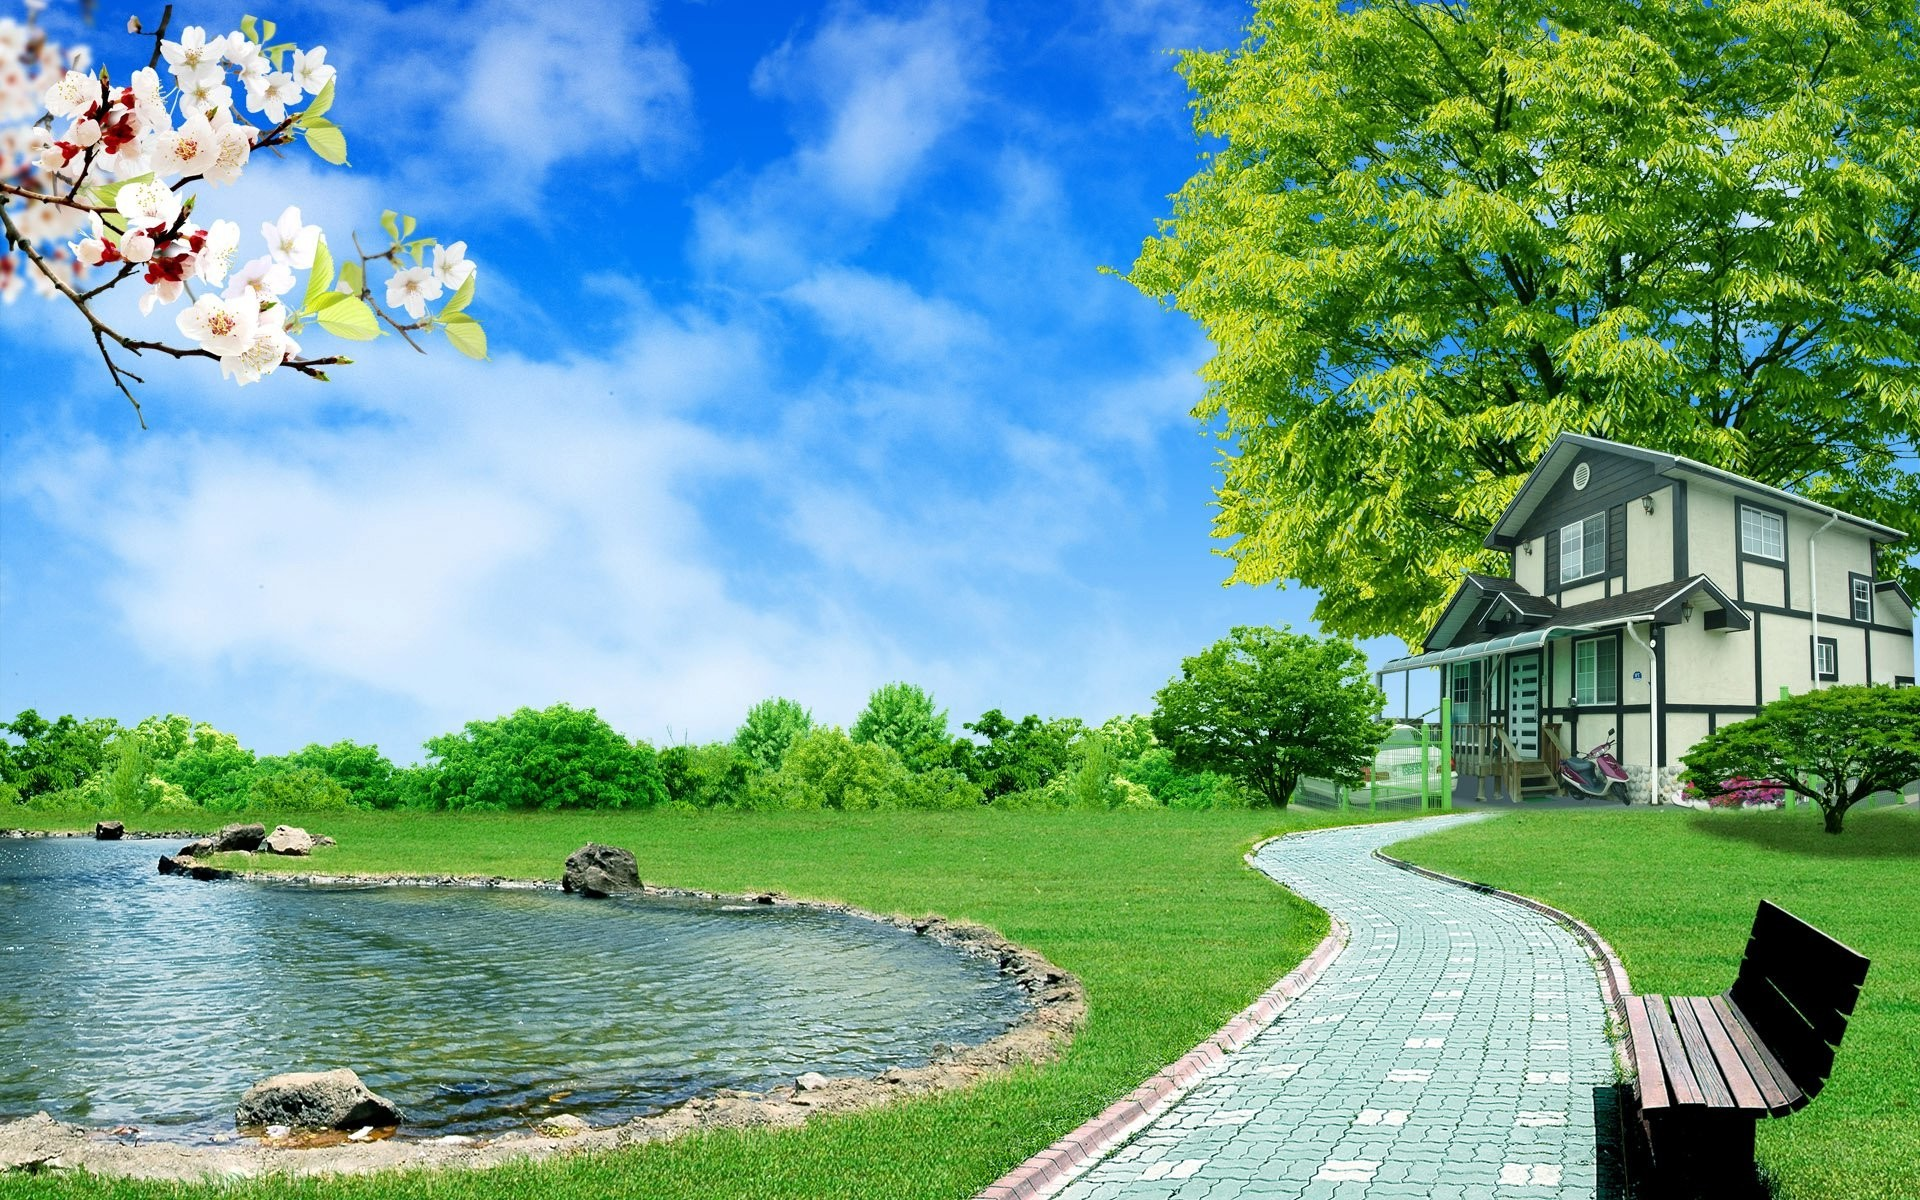 1920x1200 3D Lake House Desktop Backgrounds Nature